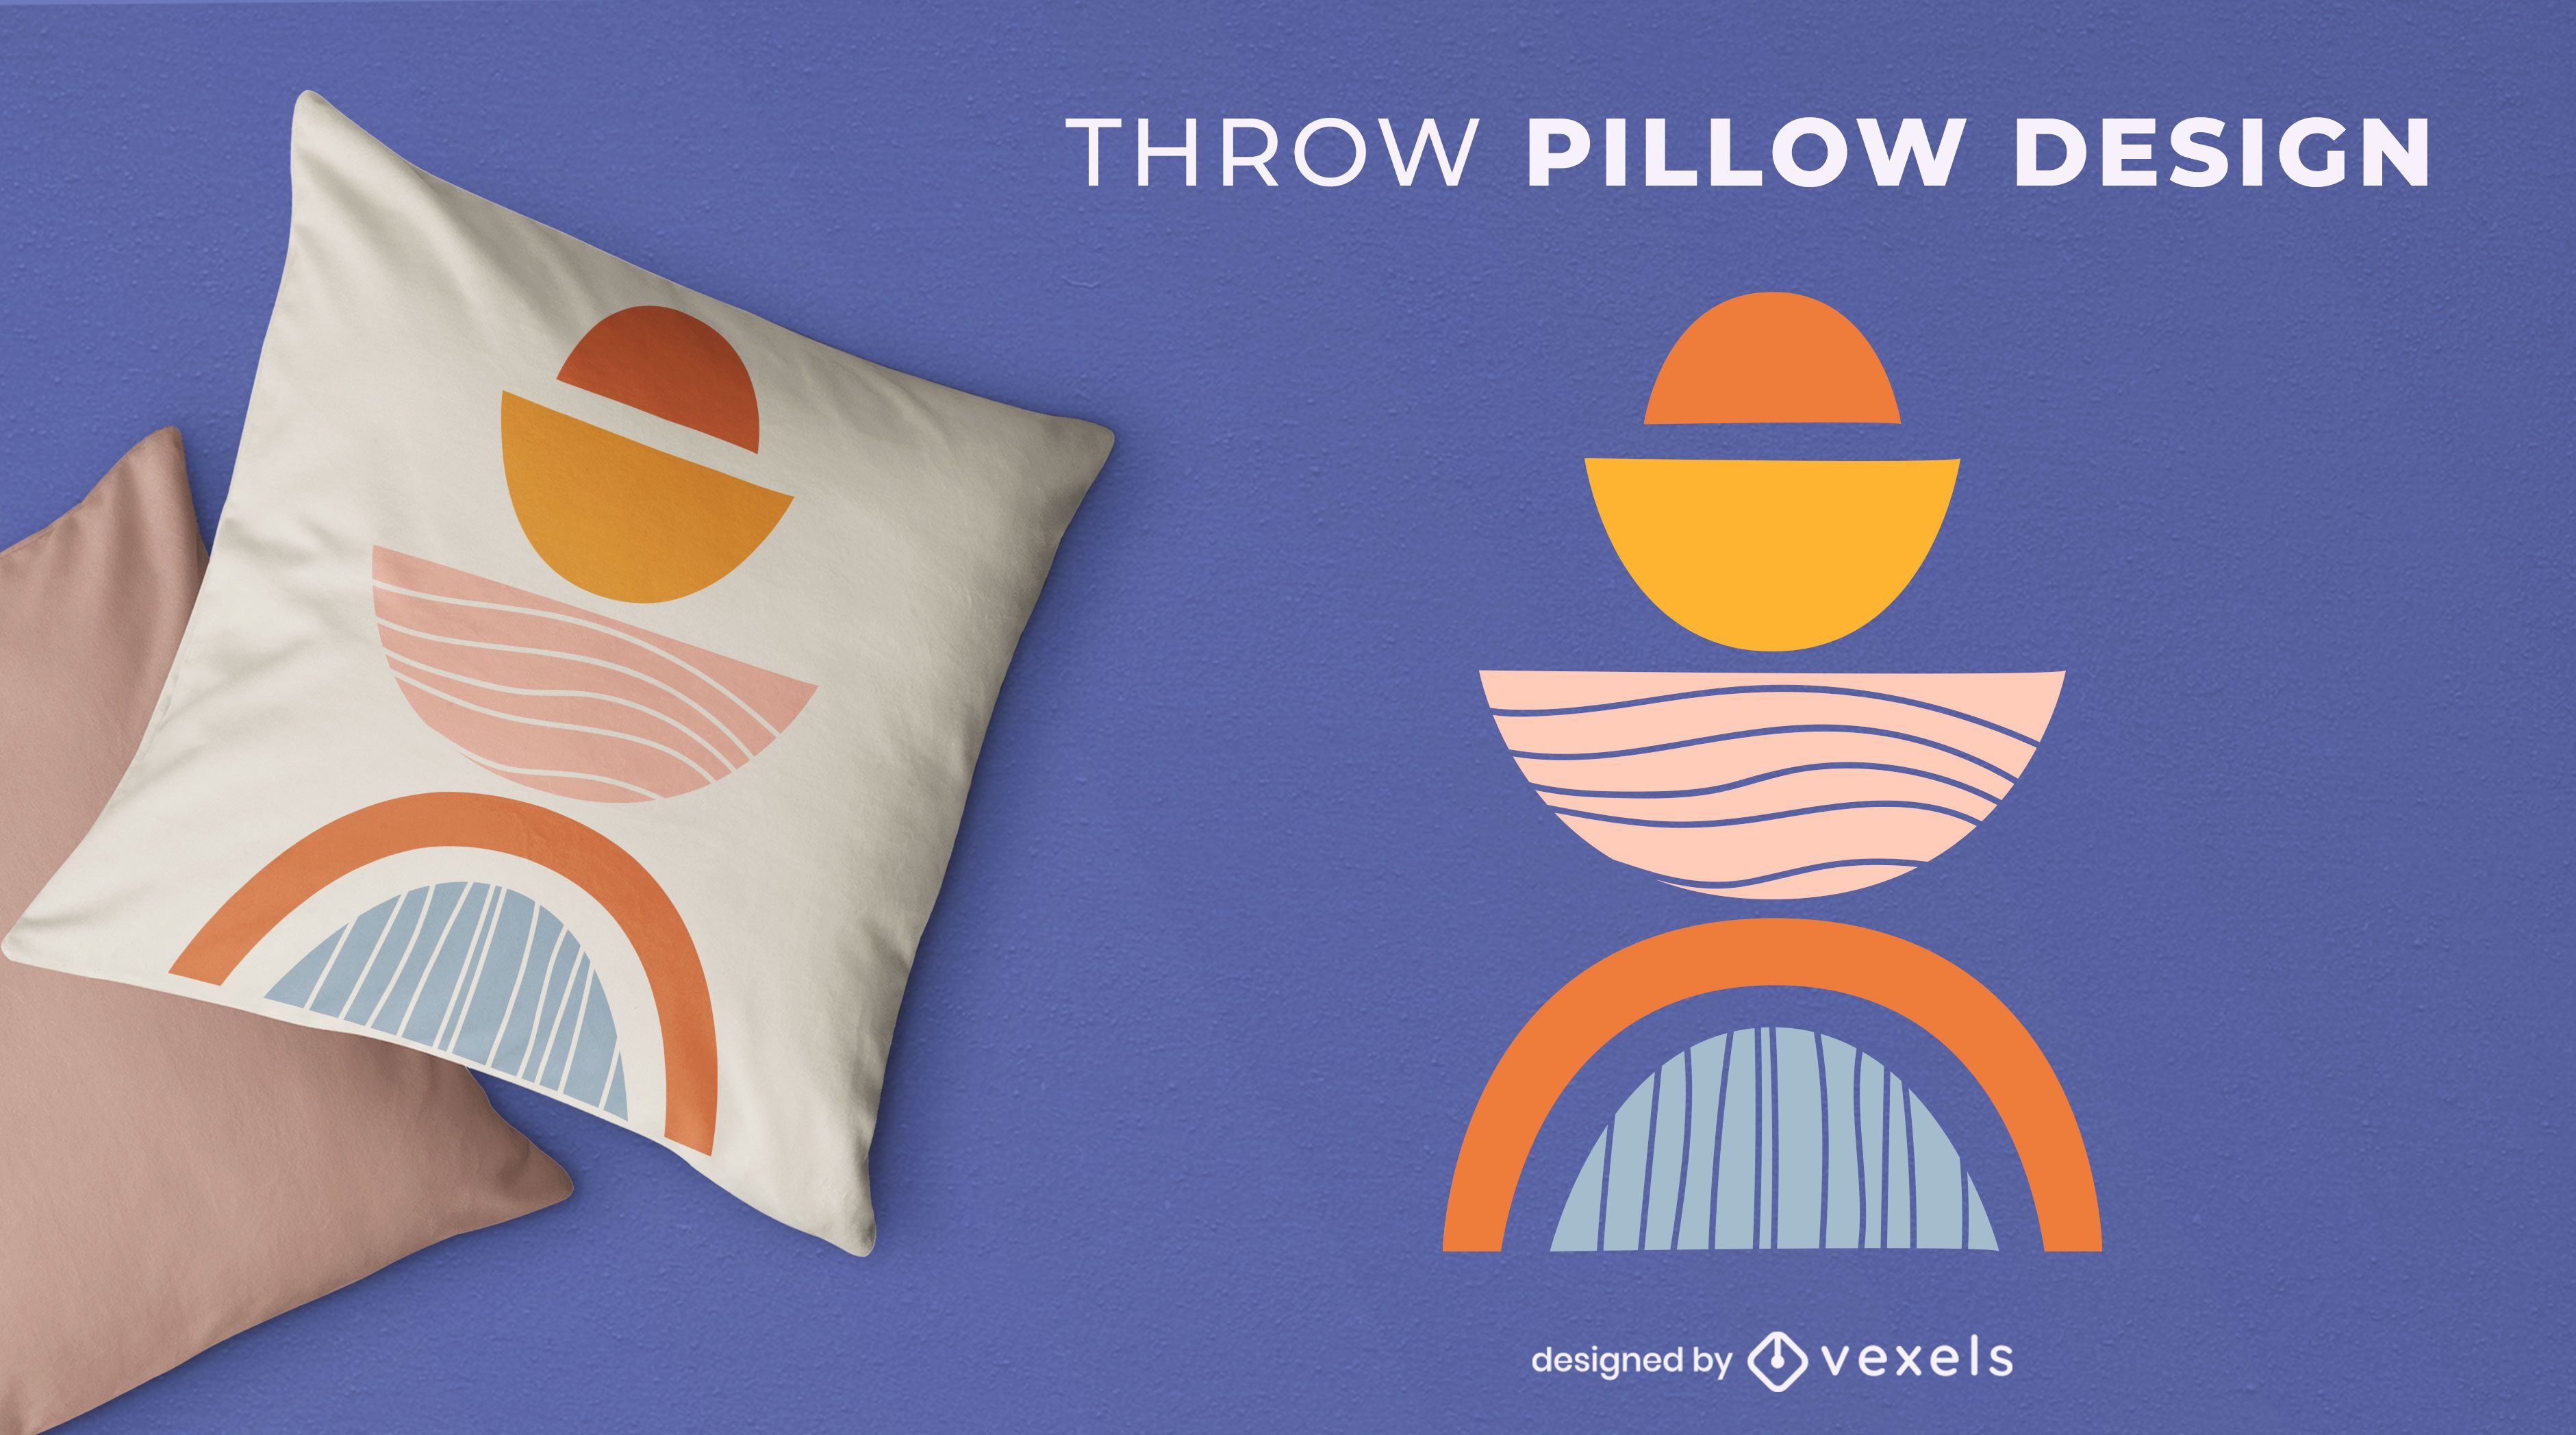 Abstract shapes throw pillow design